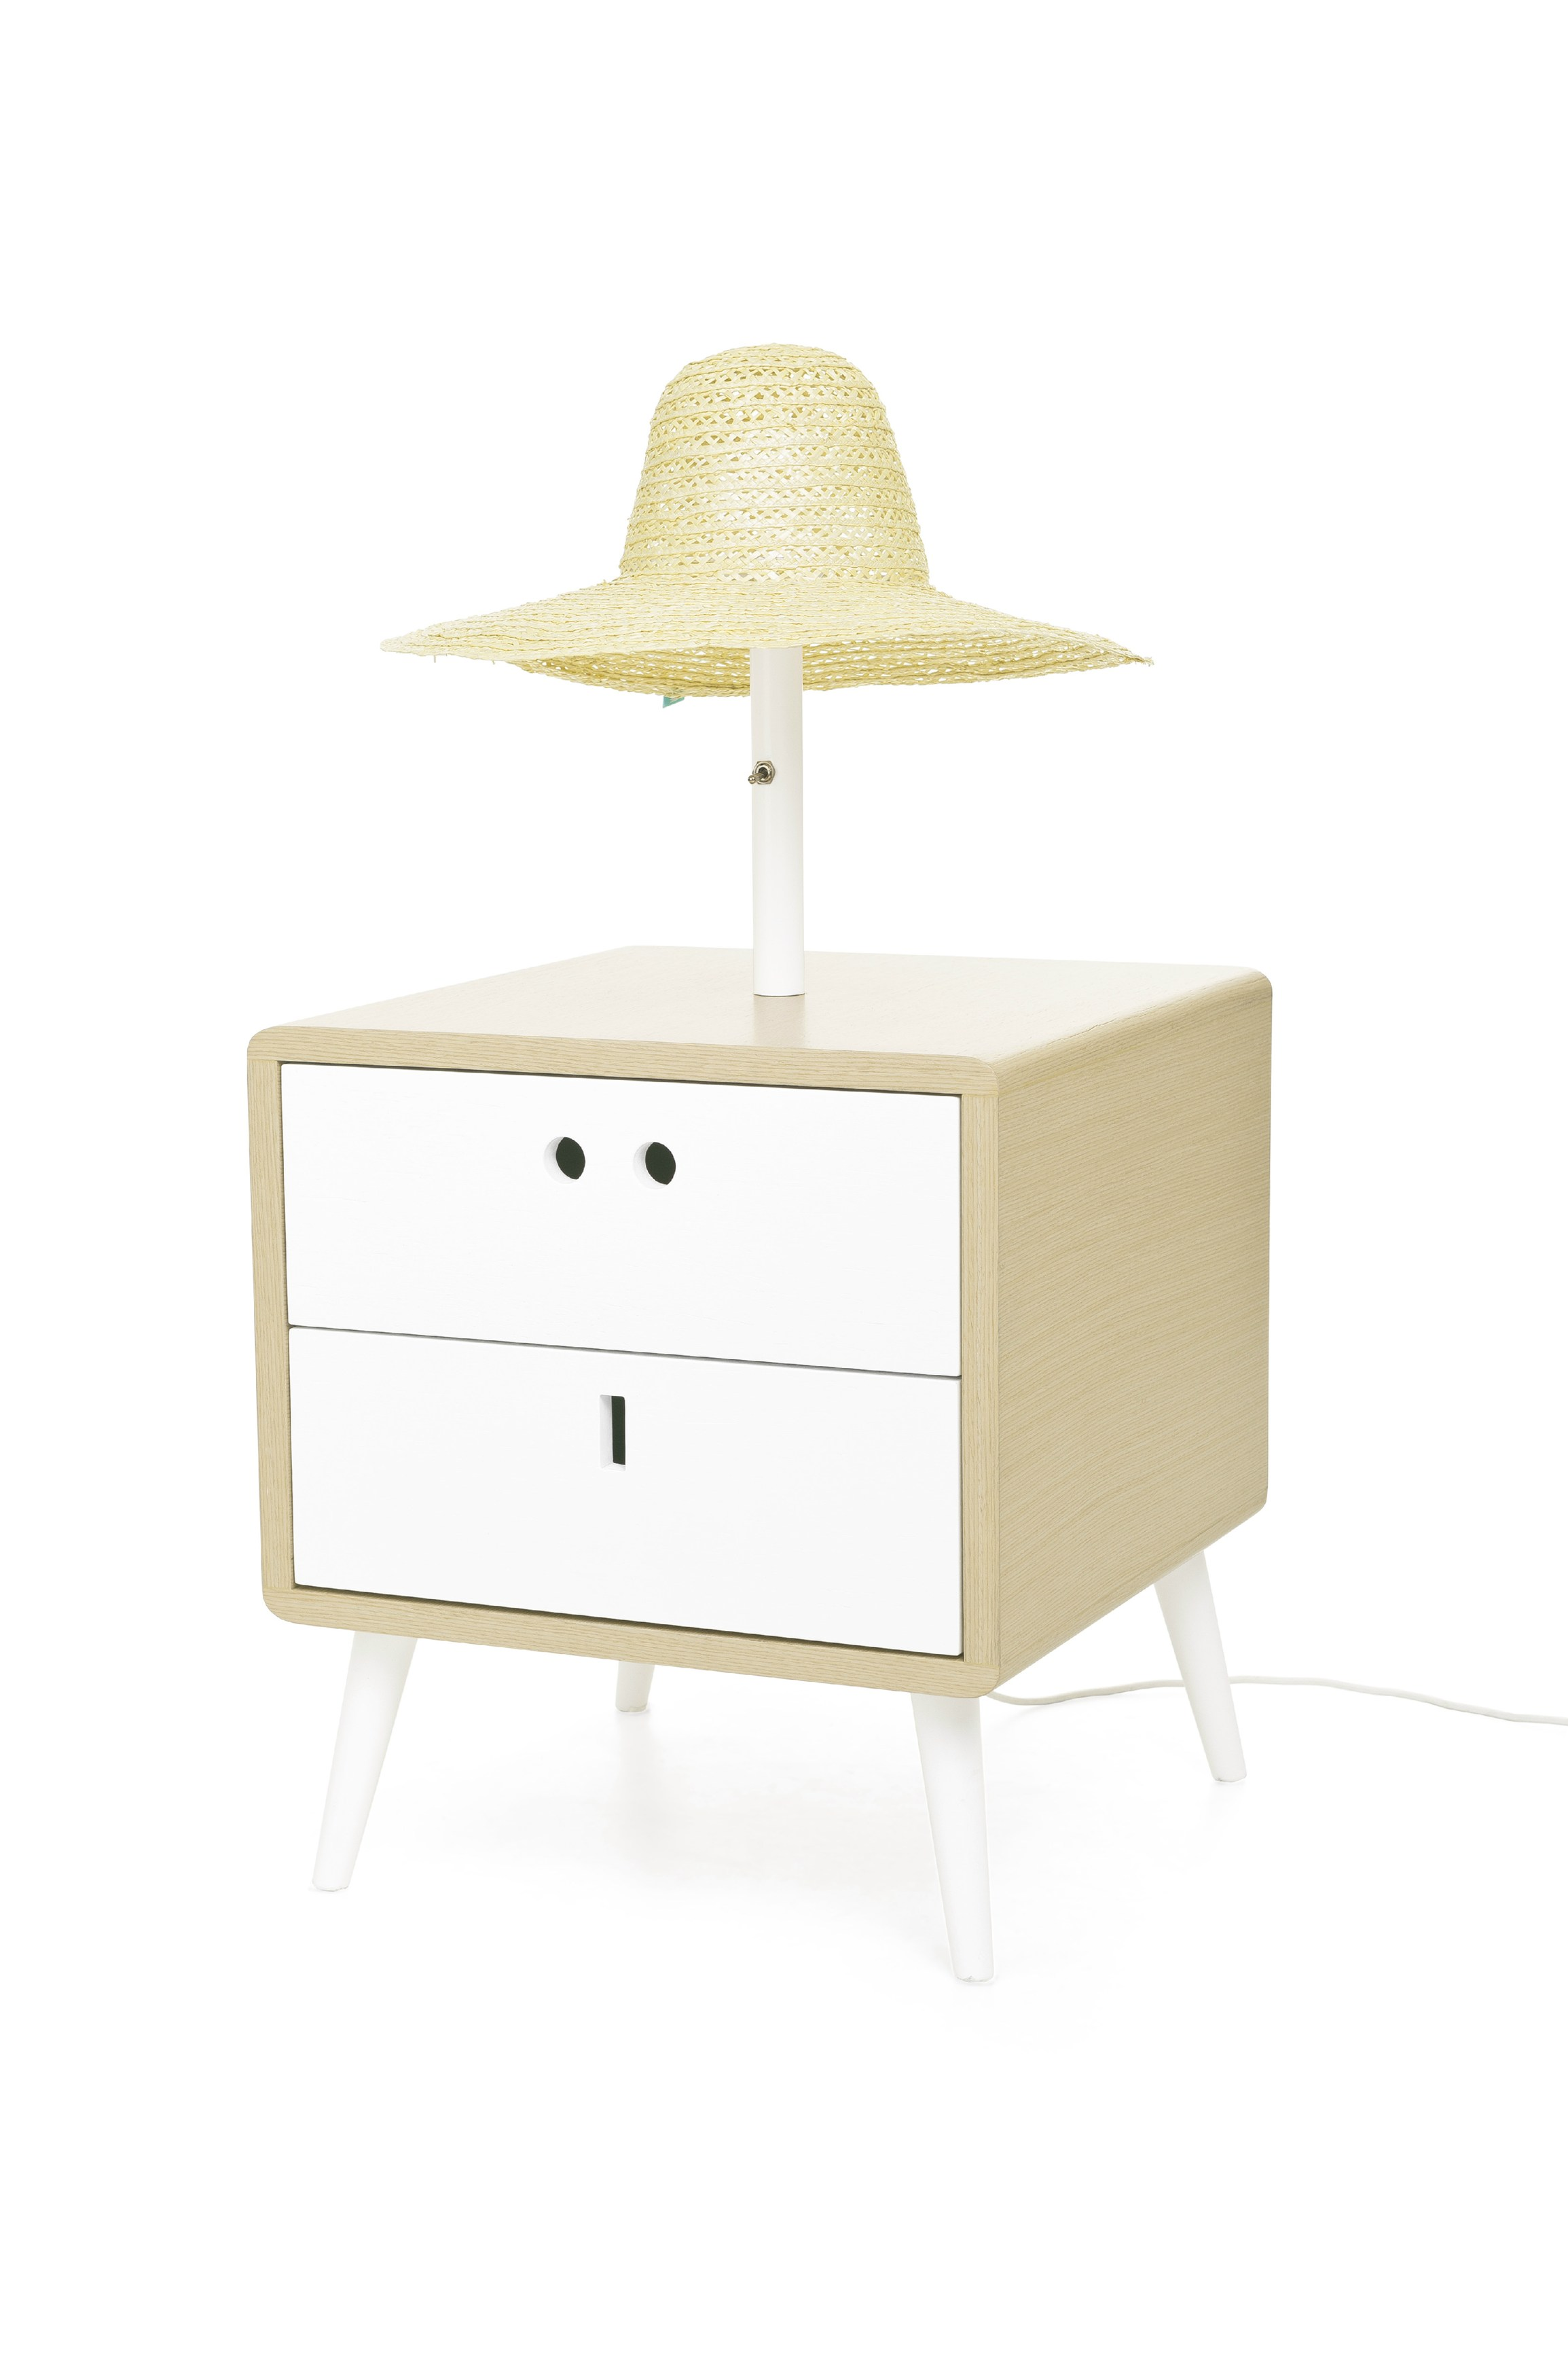 Maria Bedside Table by DAM